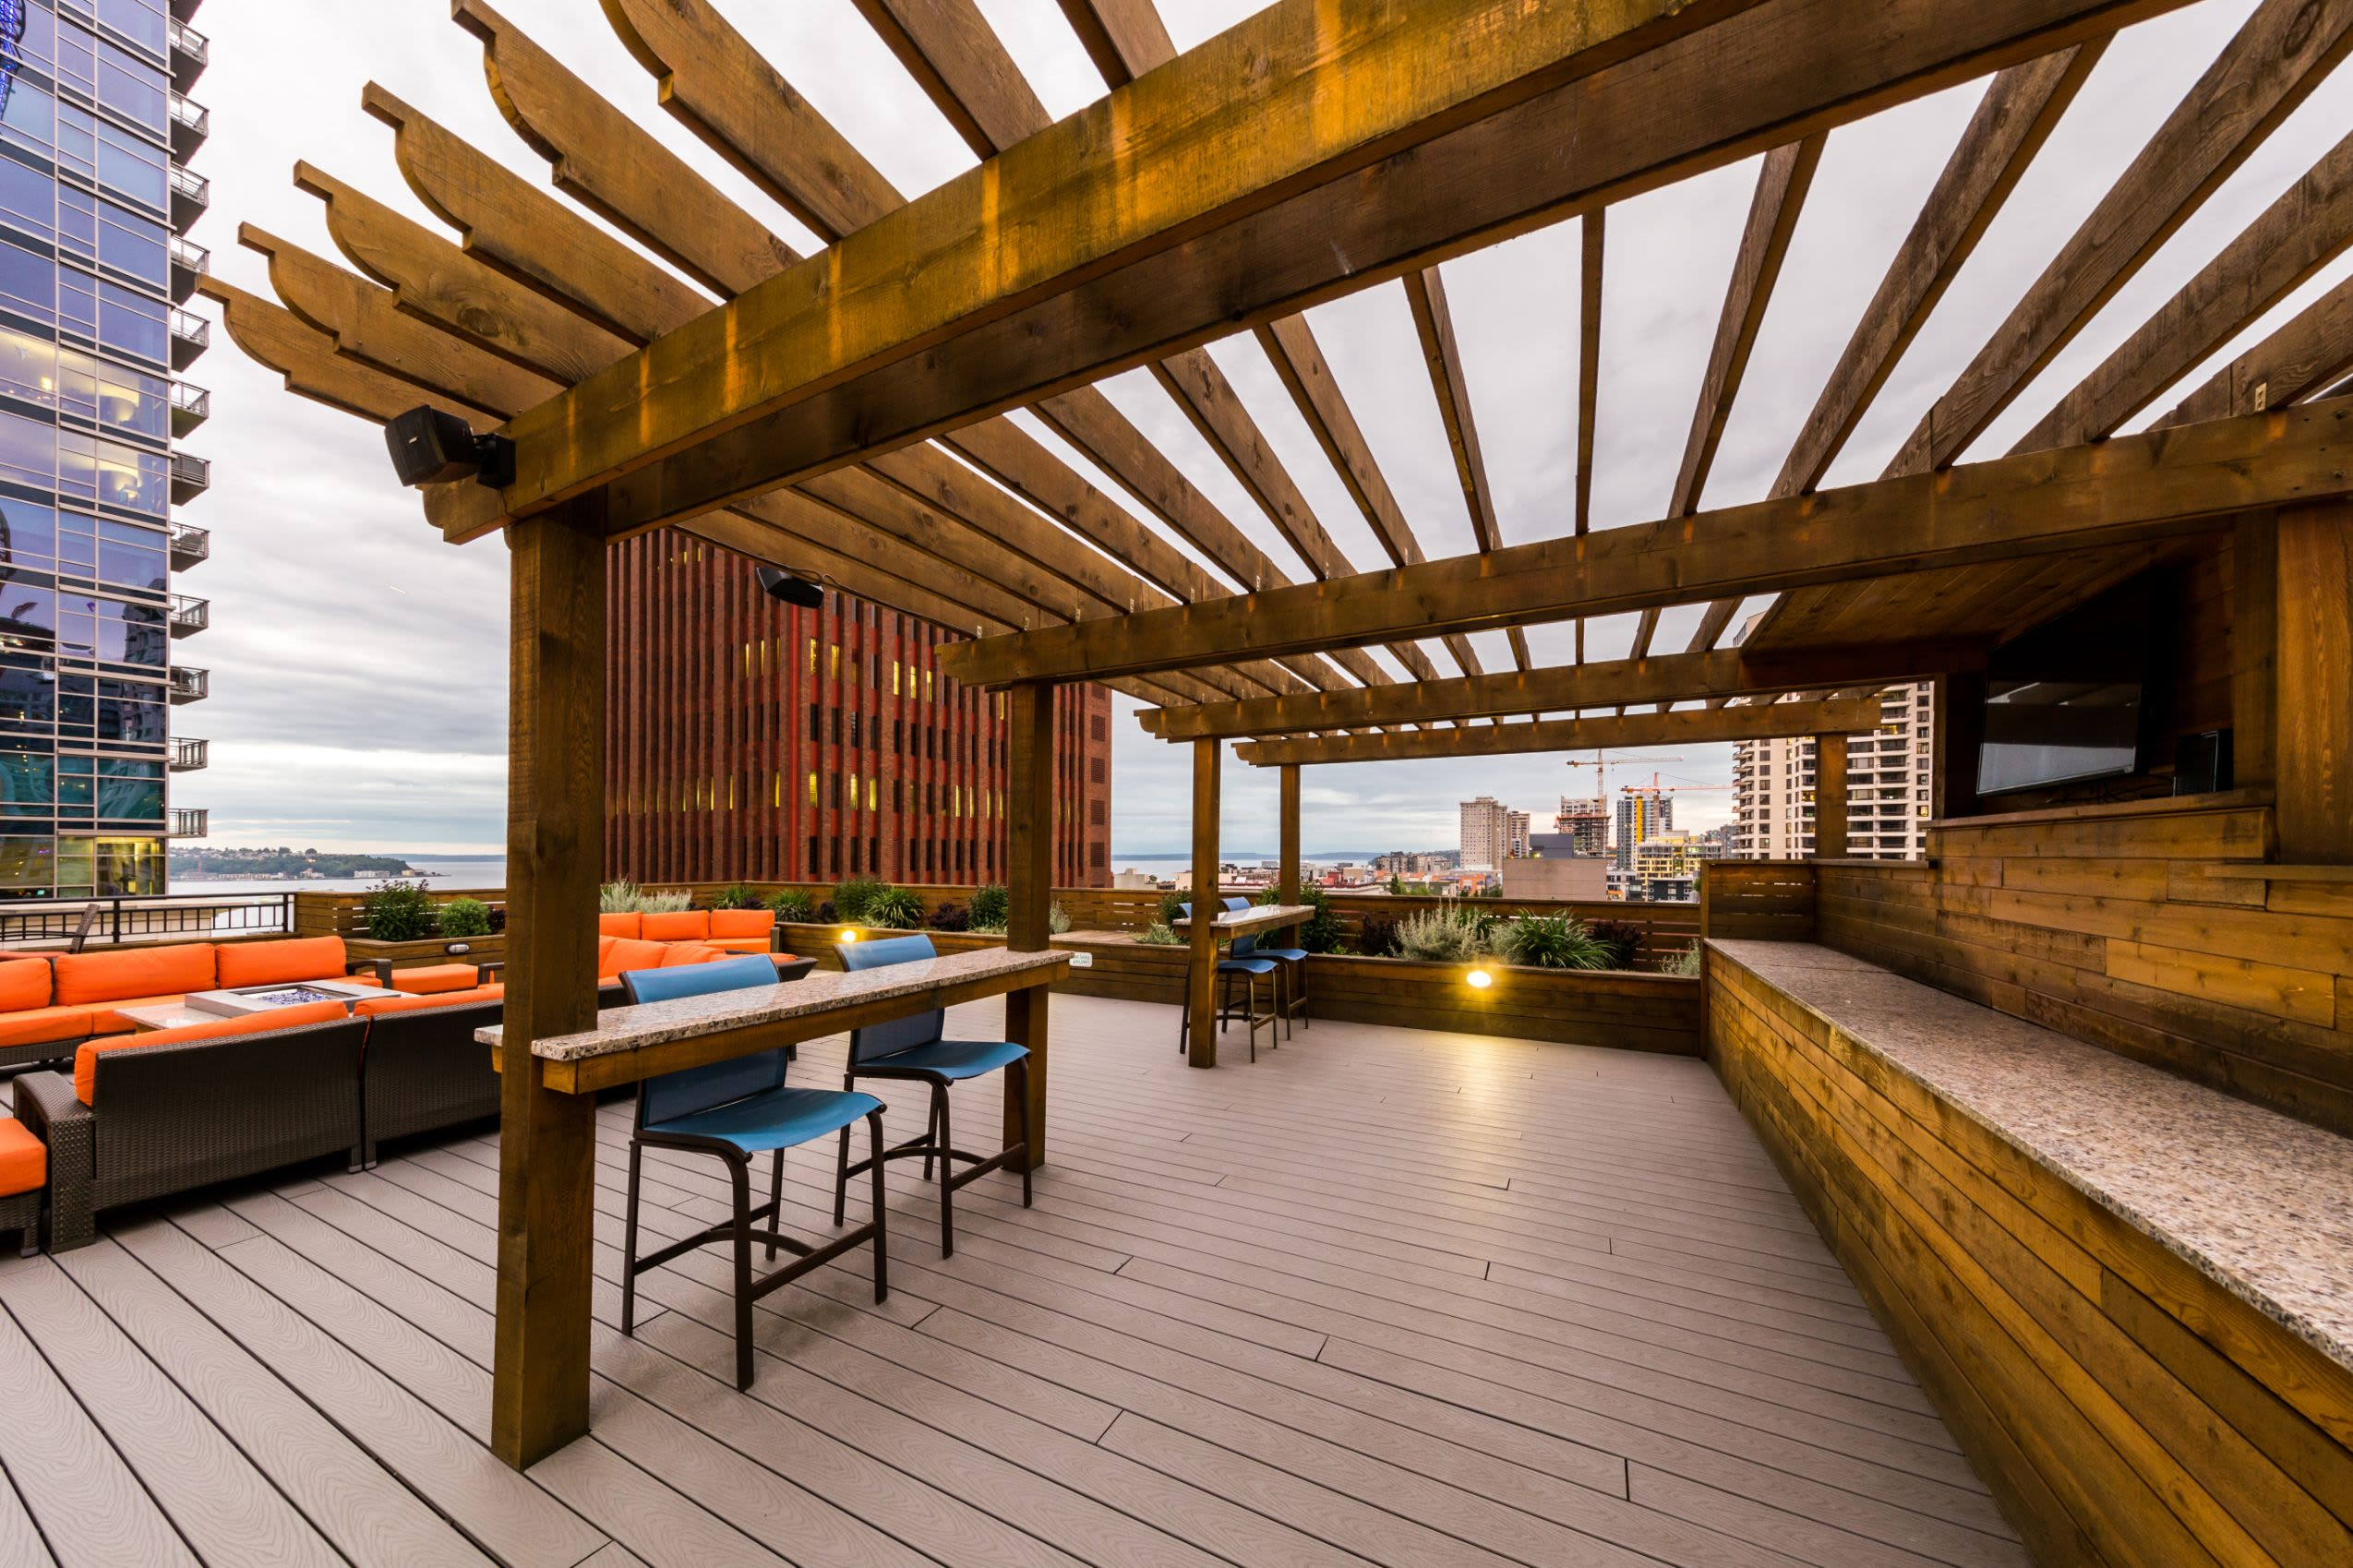 Rooftop lounge with gazebo at Marq 211 in Seattle, Washington